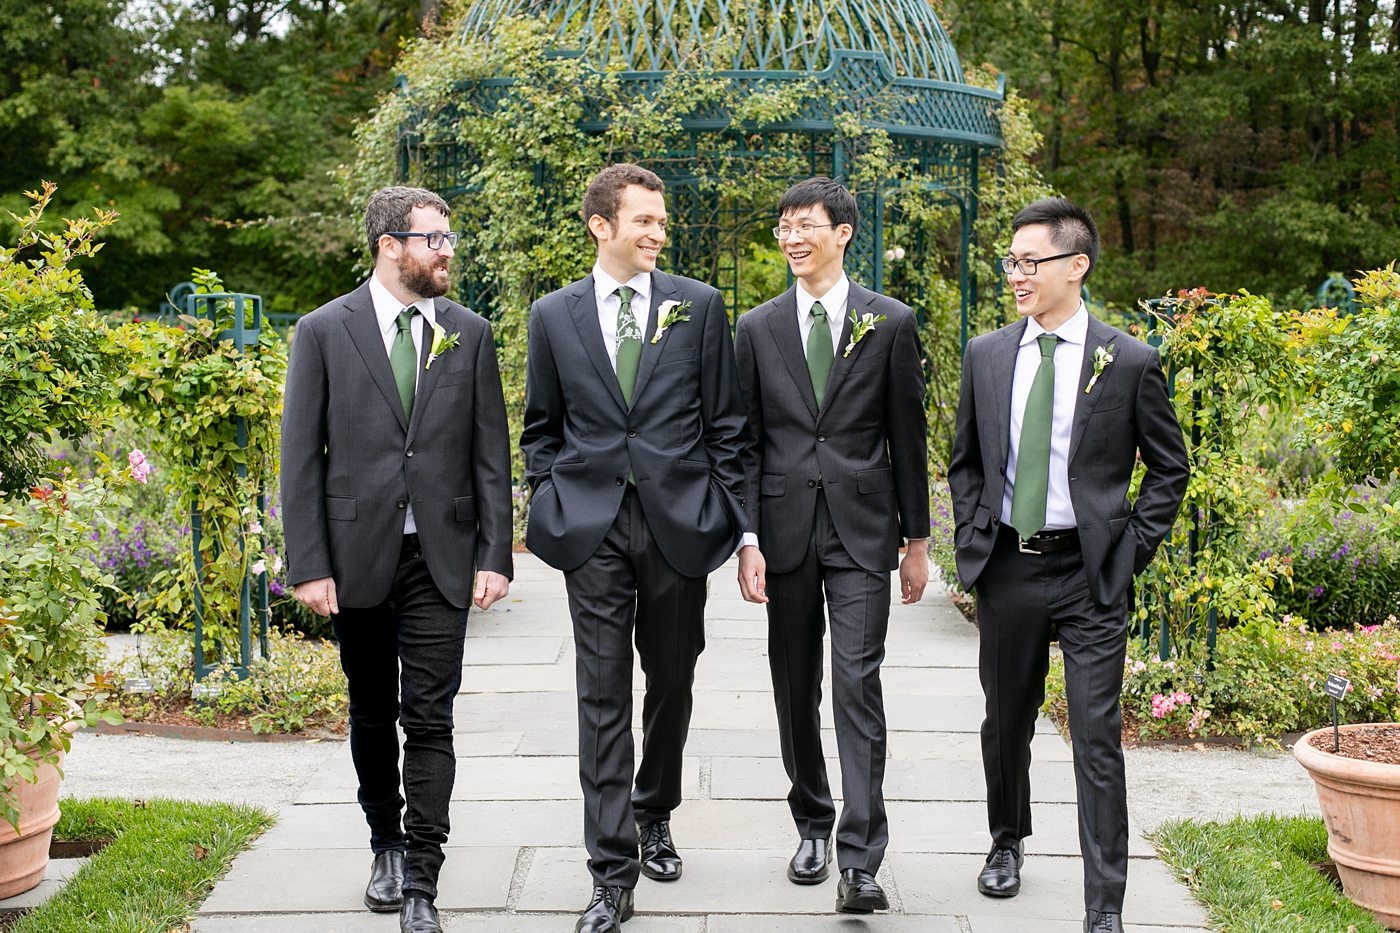 New York Botanical Garden wedding photos with groomsmen in dark gray suits, by Mikkel Paige Photography. After the couple's engagement photoshoot in Manhattan I was so excited for their fall wedding near the Conservatory at the Terrace Room, at this NYC venue. #mikkelpaige #nybg #newyorkbotanicalgardenwedding #NYBotanicalGarden #Bronxwedding #newyorkcityweddingvenues #groomstyle #weddingparty #groomsmen #bridalparty